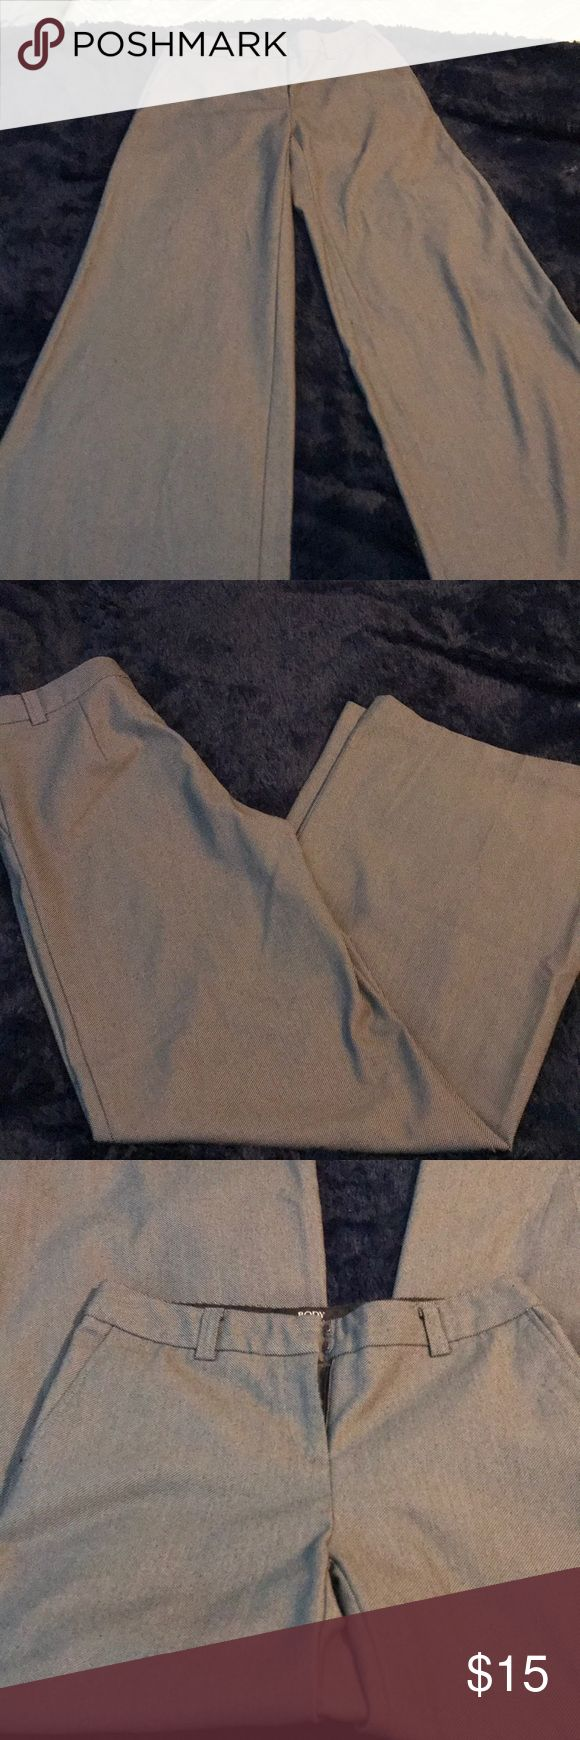 """Women's wide leg dress pants black and gray 2 tall Women's dress pants with wide leg Marisa Fit. Size 2 tall. Inseam is 32"""" Body by Victoria - Victoria's Secret. Body by Victoria Pants Trousers"""